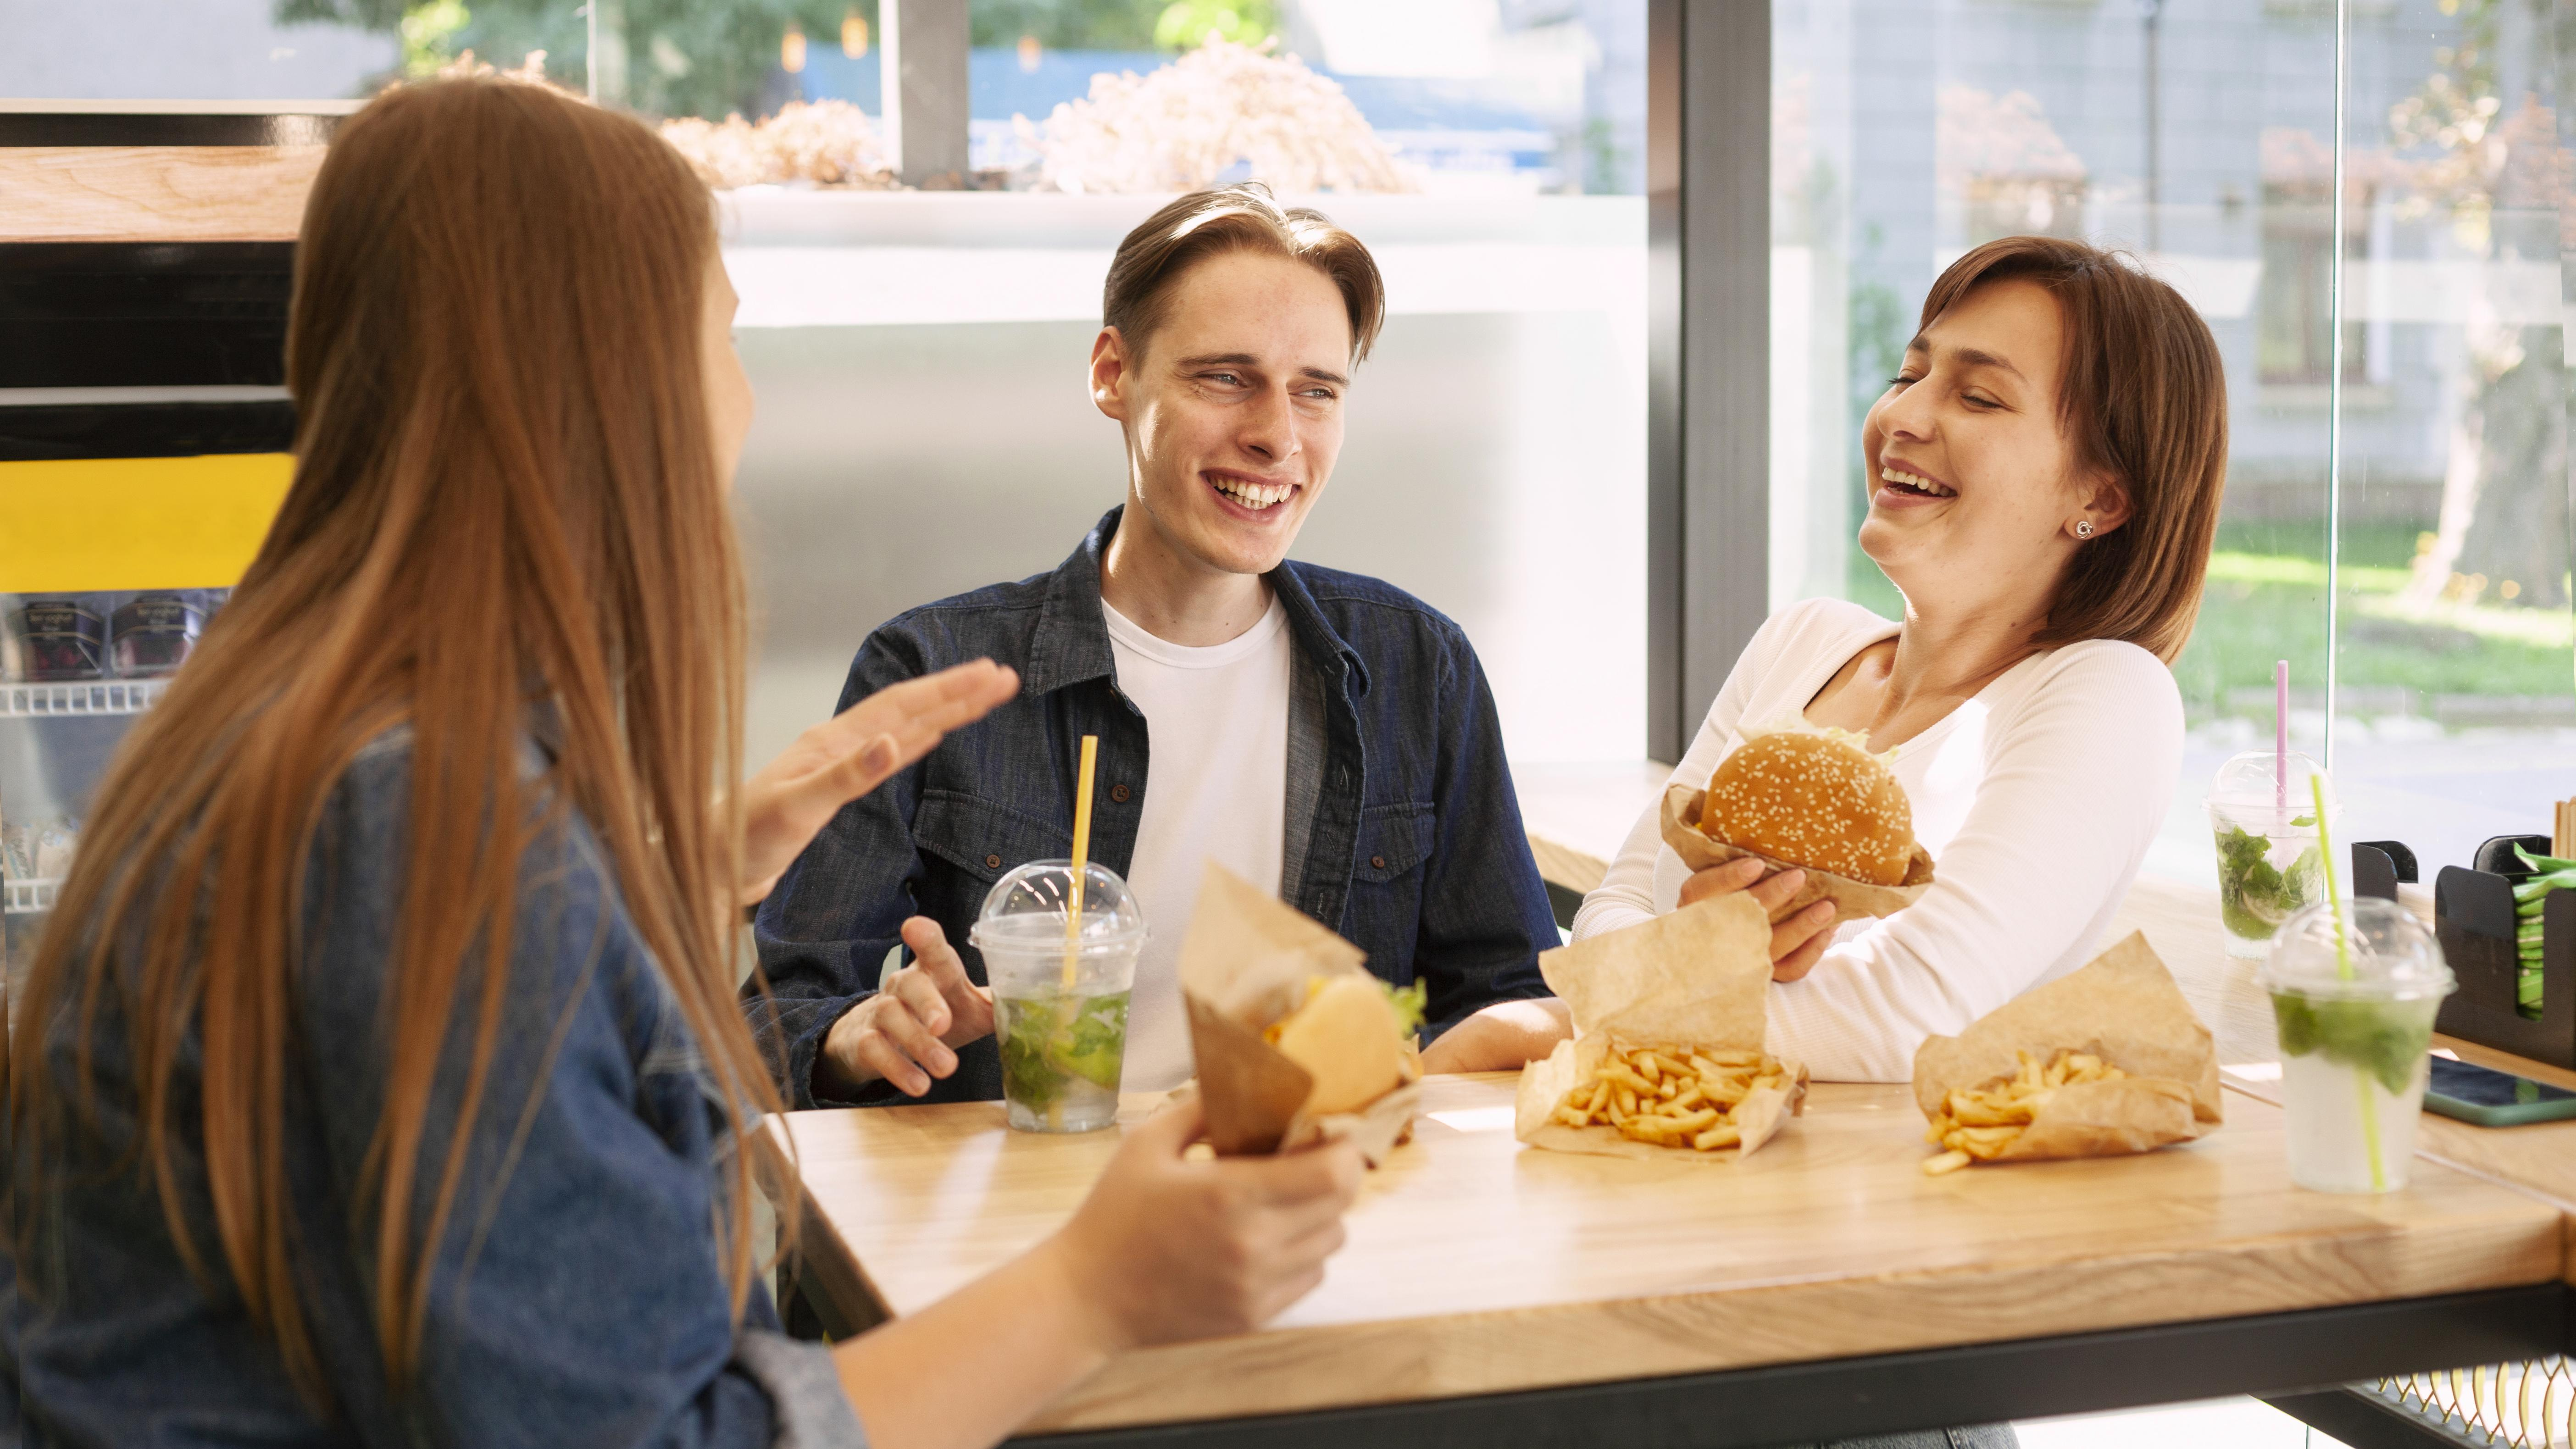 group-smiley-friends-fast-food-restaurant